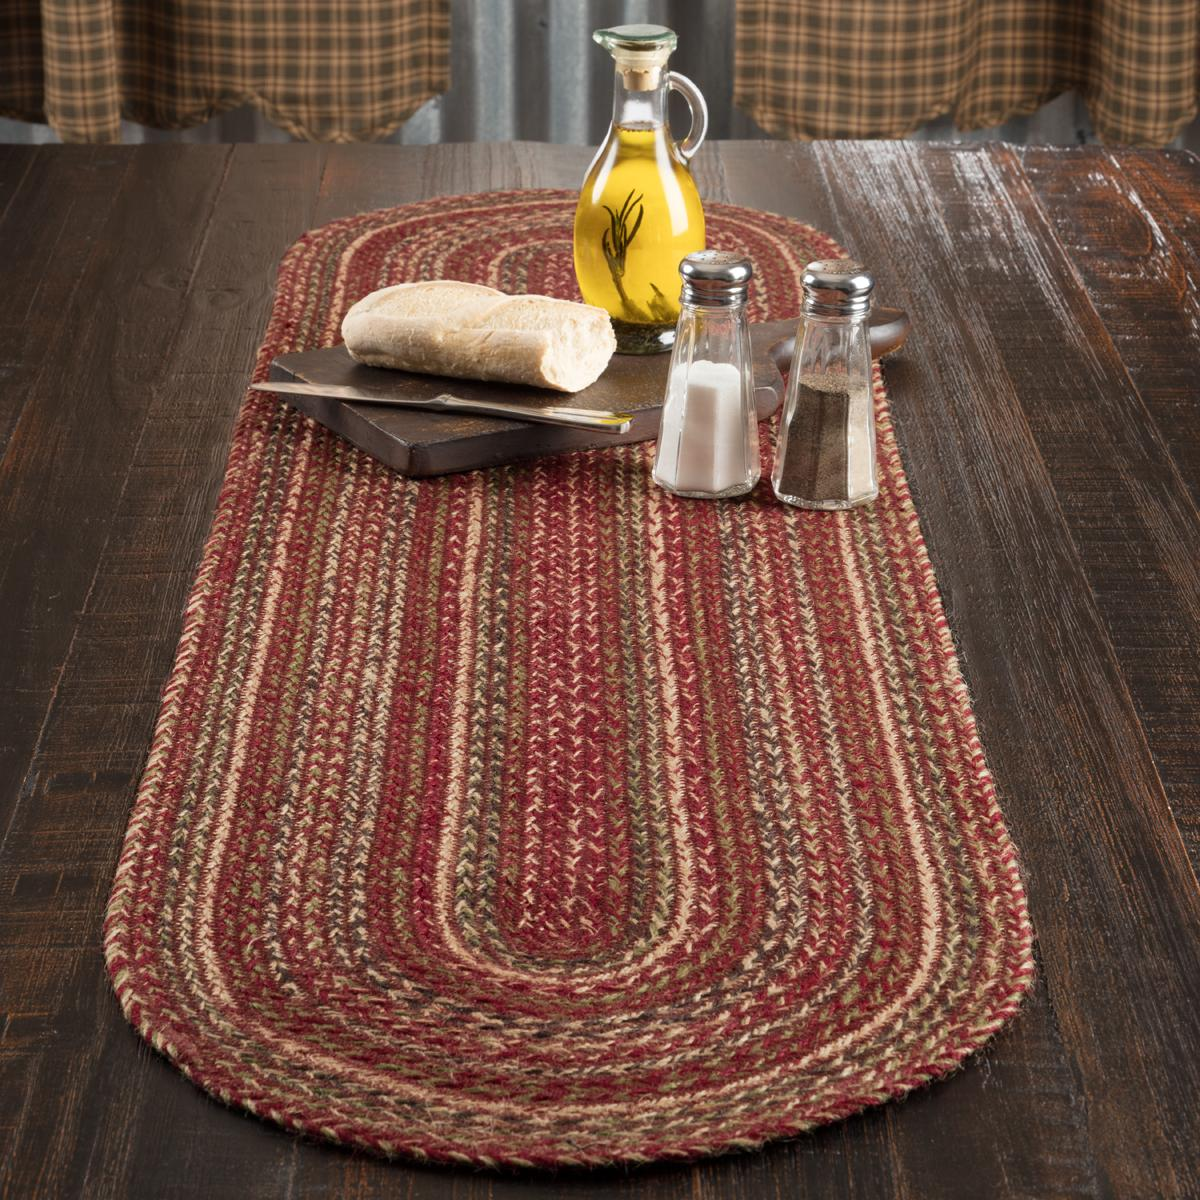 Cider Mill Farmhouse Braided Jute OVAL Table Runner/3 Sizes/